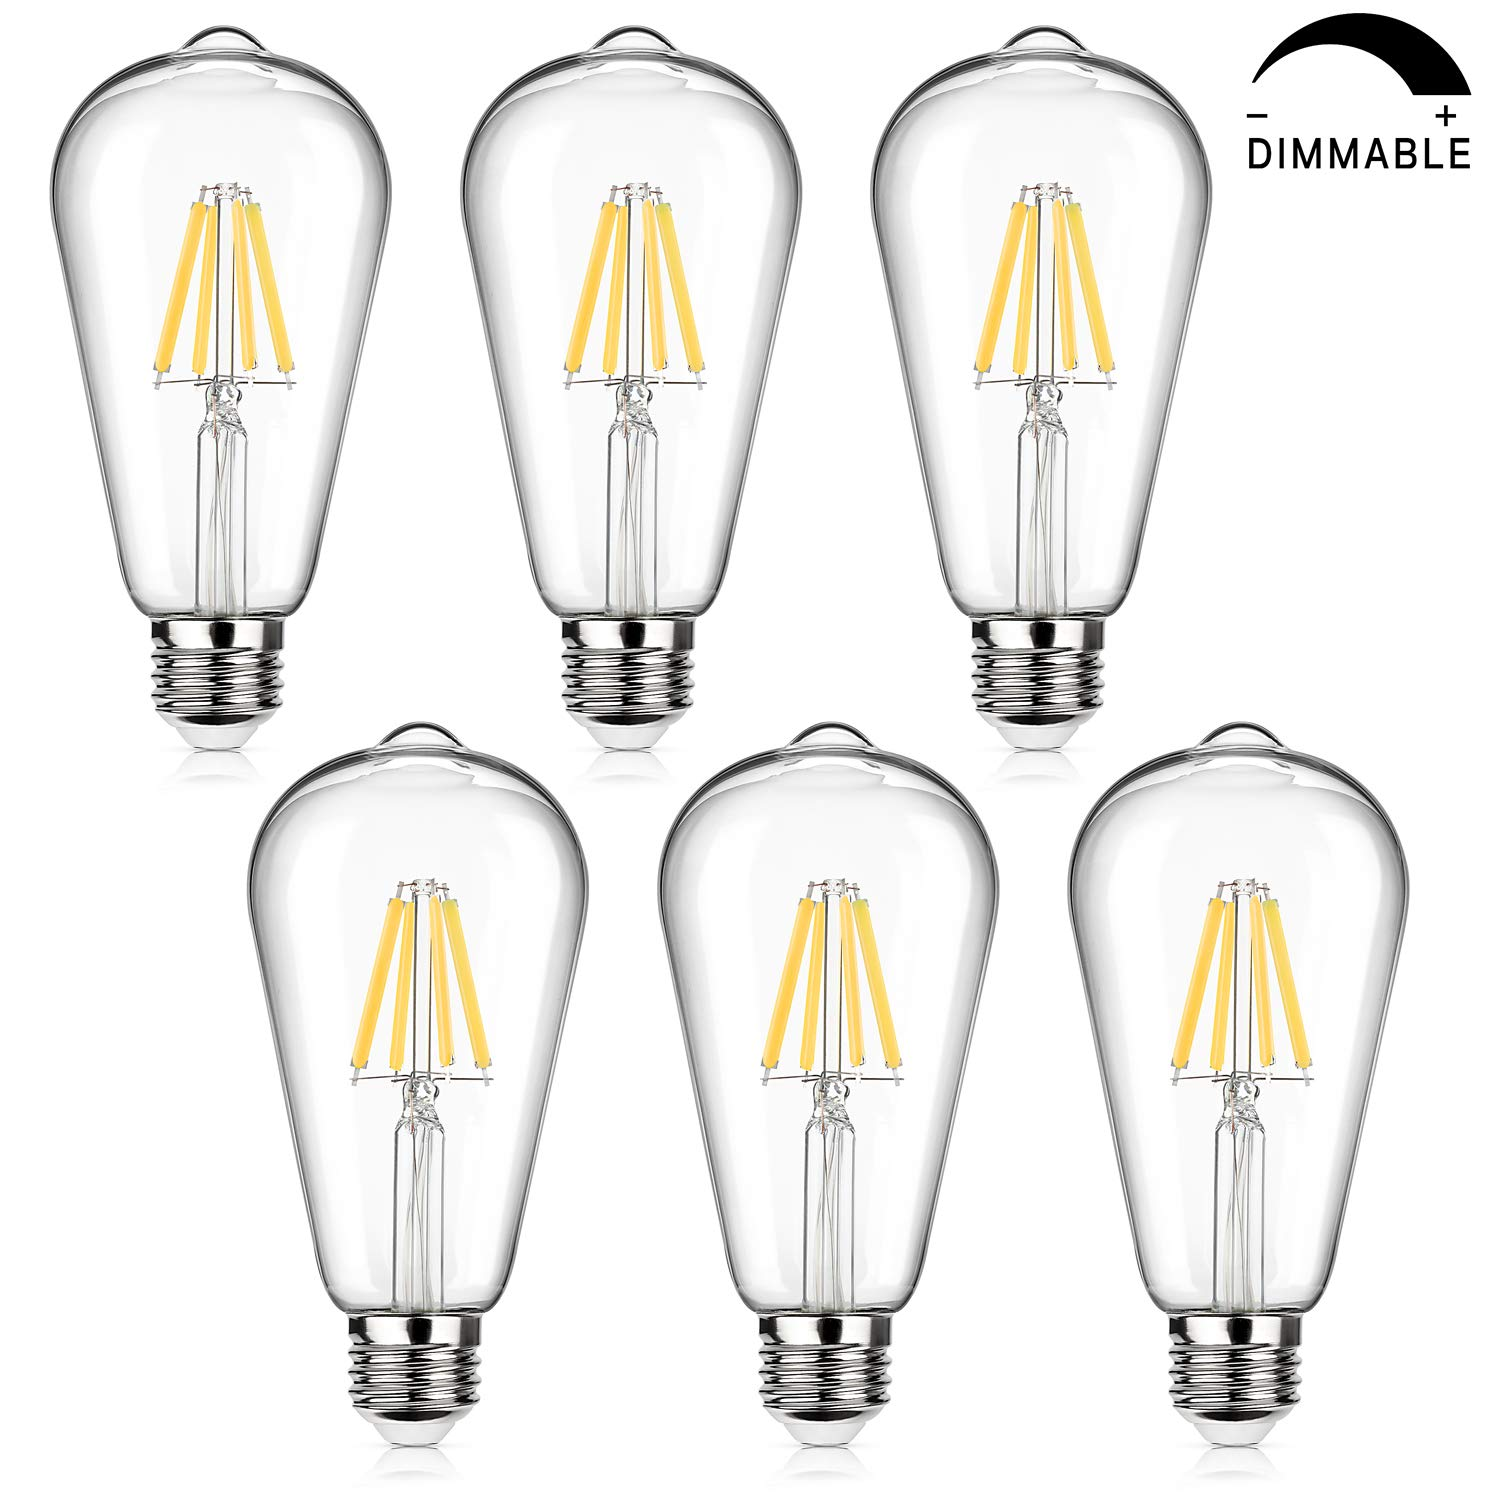 LED Edison Bulb Dimmable, 60W Incandescent Equivalent 800Lumens, Petronius 6W Vintage LED Filament Light Bulbs Daylight White 4000K, E26 Medium Base, ST64 Antique Style LED for Home Office, Pack of 6